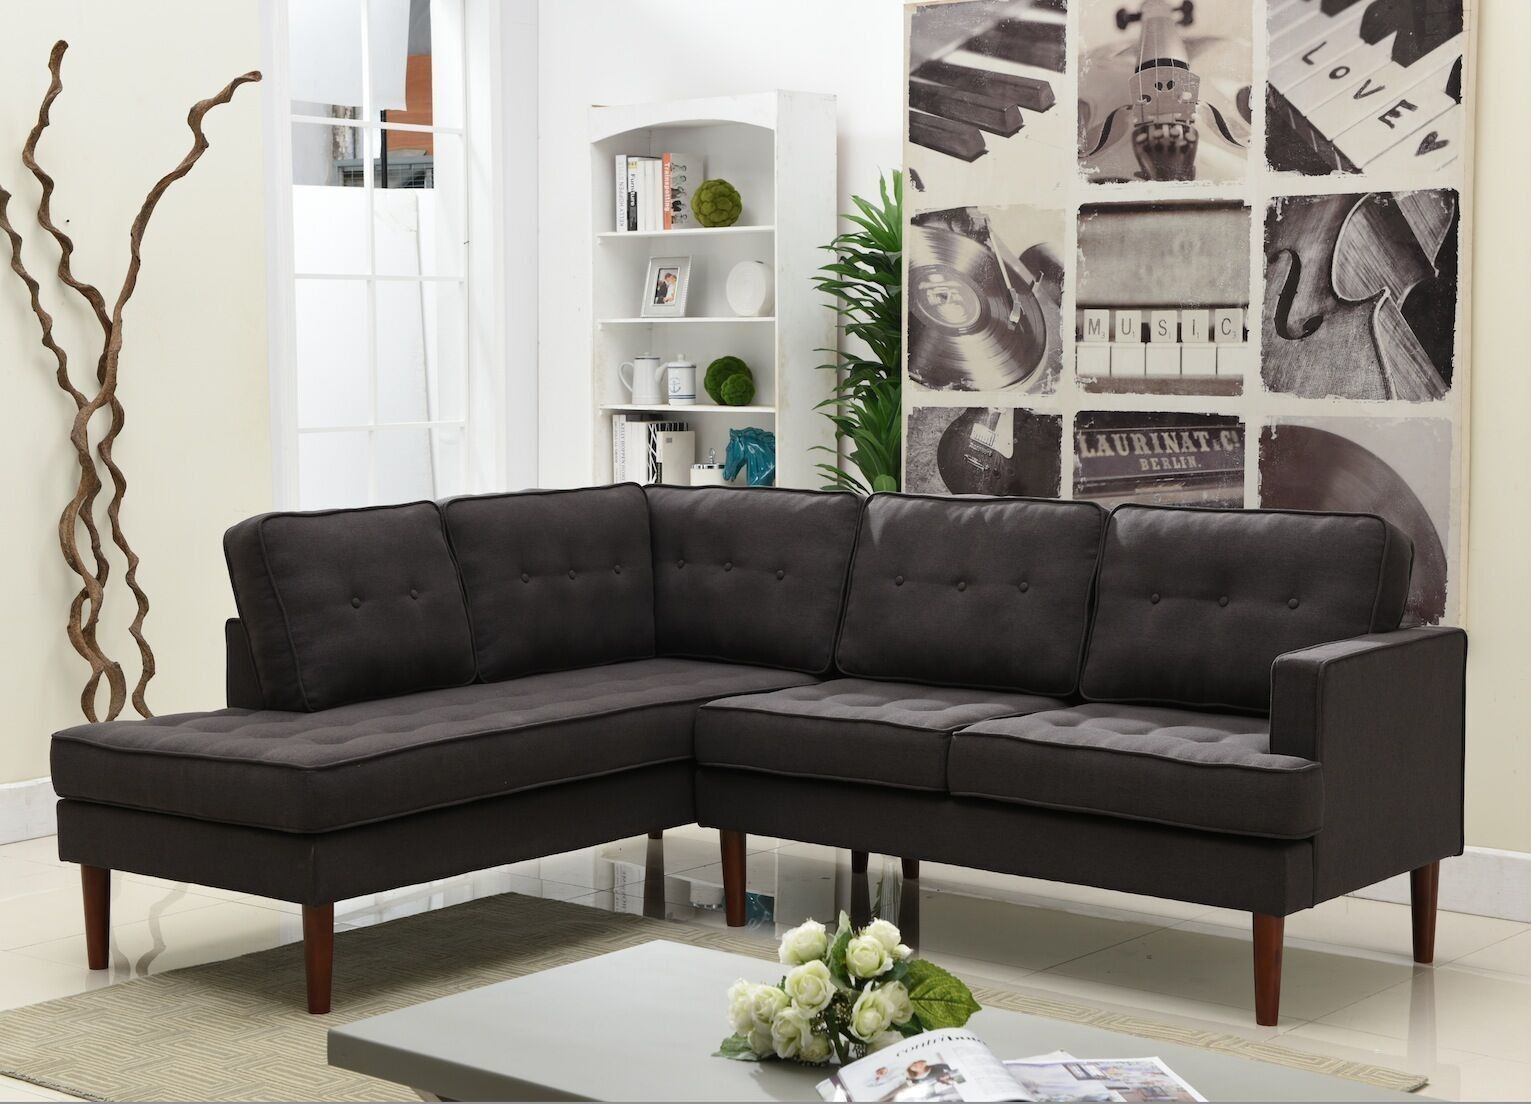 Camden Left Sectional Sectional Sofa Couch Furniture Modular Sectional Sofa